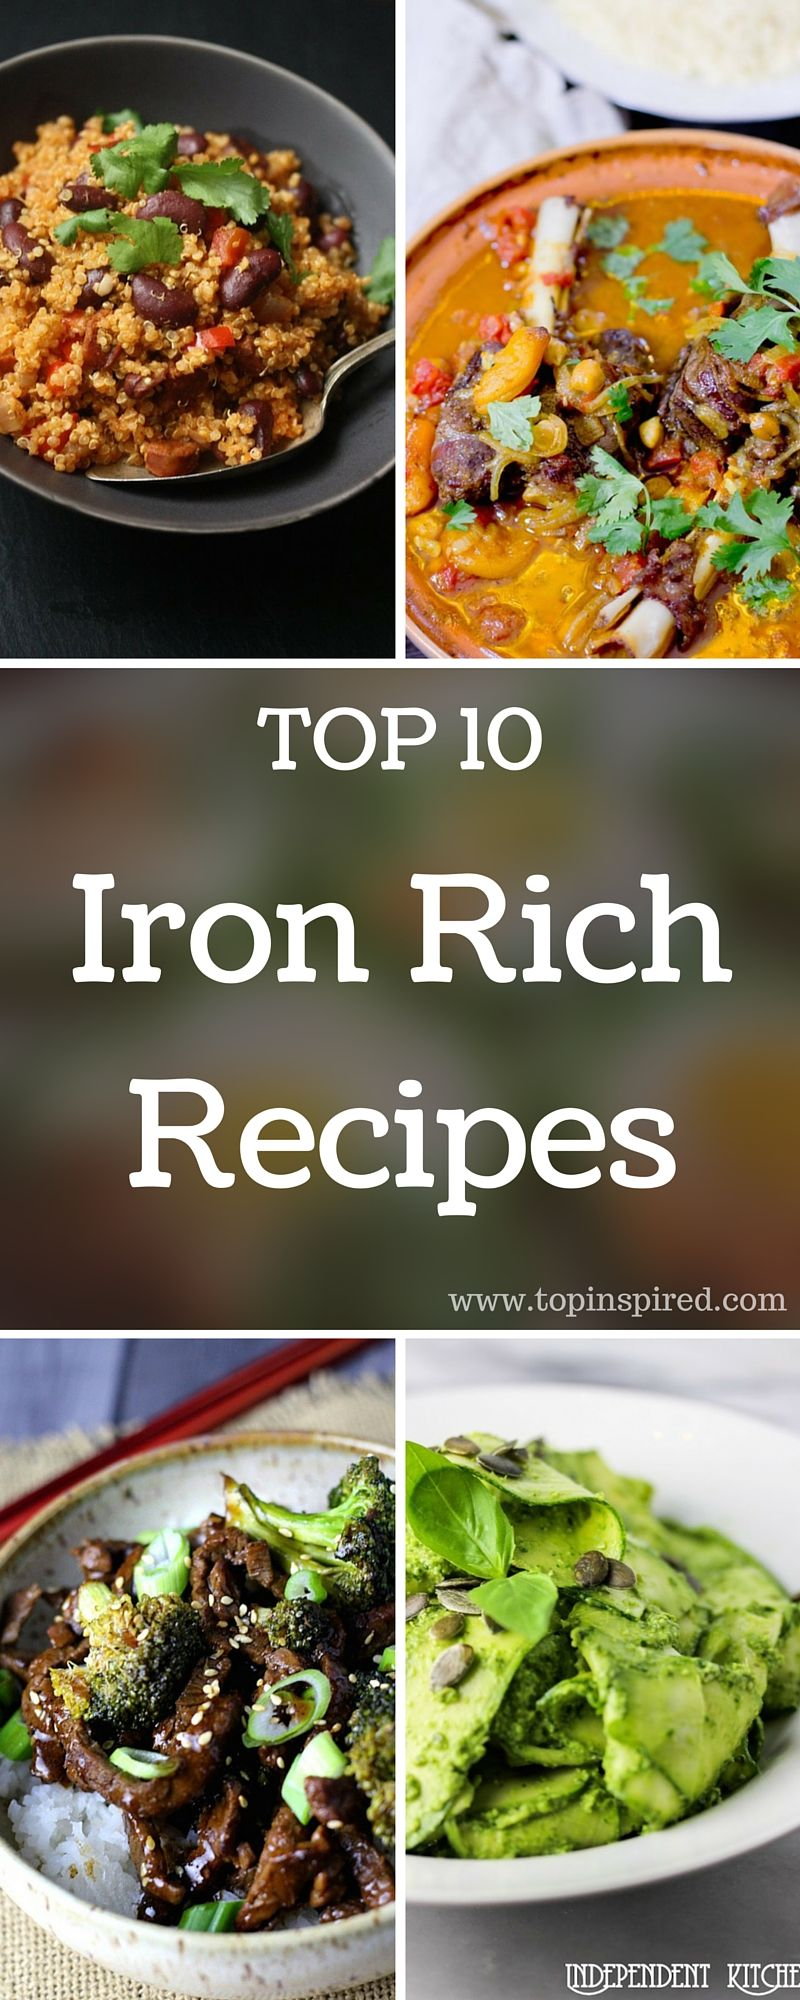 TOP 10 Iron Rich Recipes Iron rich foods, Food recipes